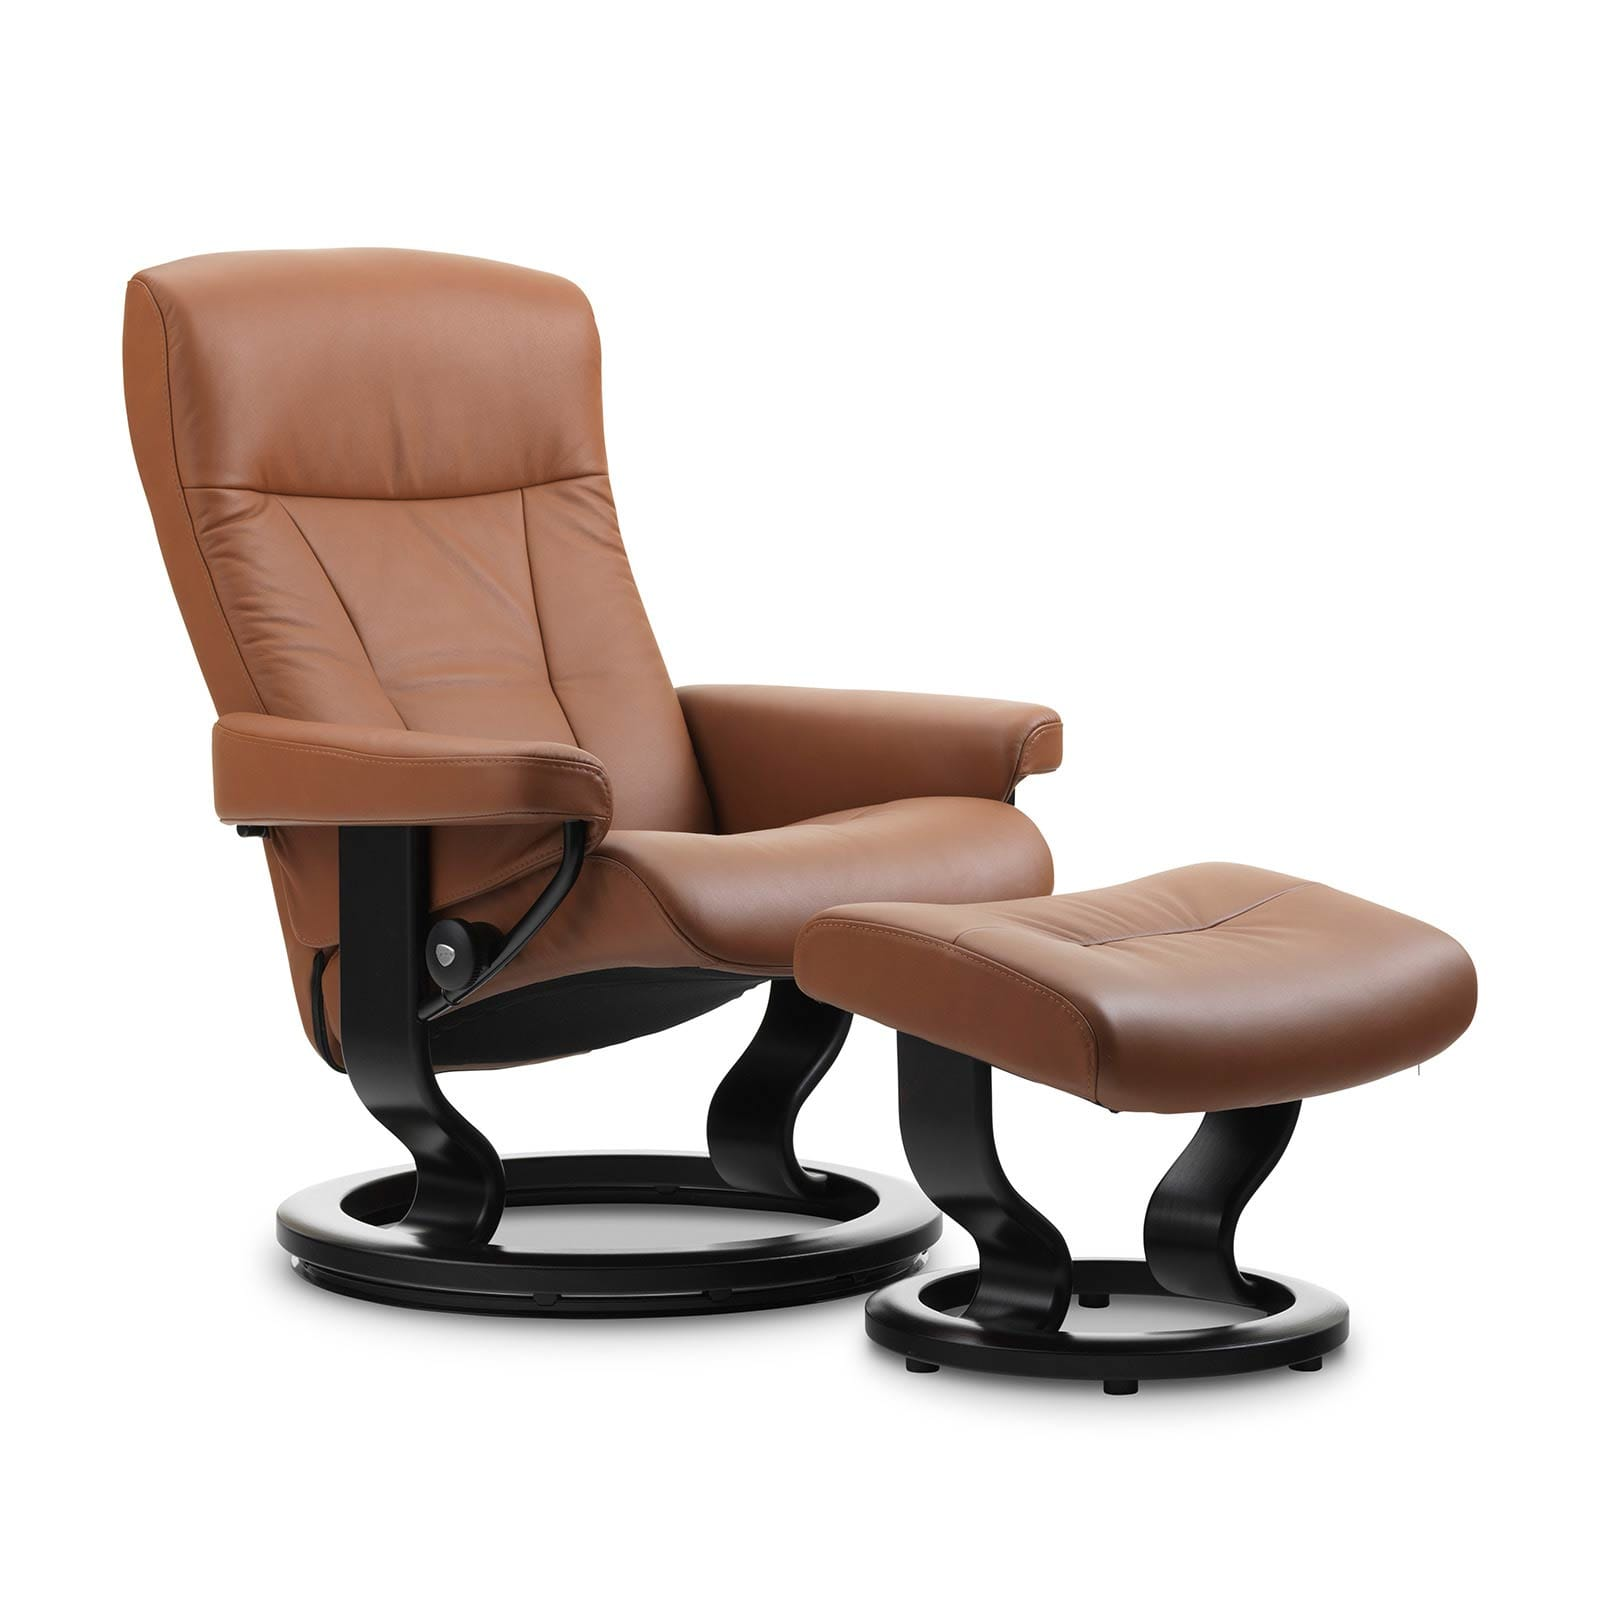 Stressless Sessel Preise Jazz Stressless Arion Preis Arion Stressless Sofas Und Couches Arion